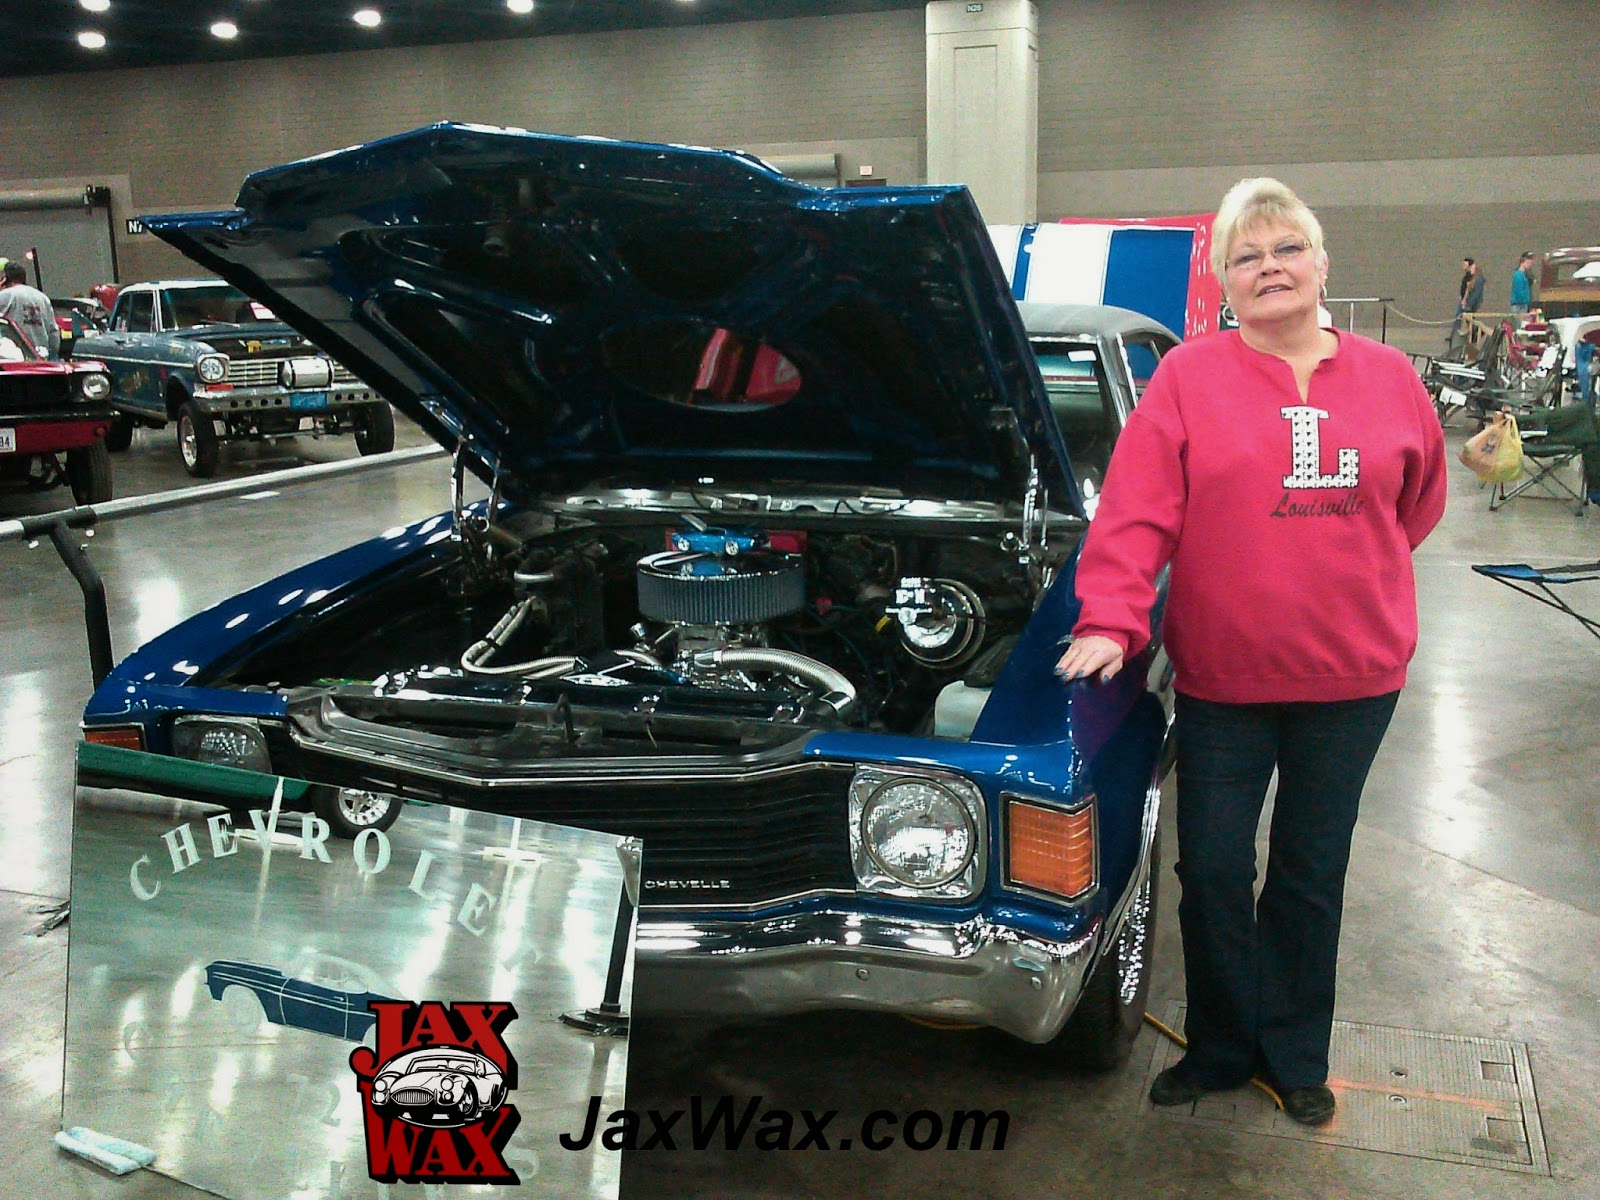 1972 Chevy Chevelle SS Carl Casper Auto Show Jax Wax Customer